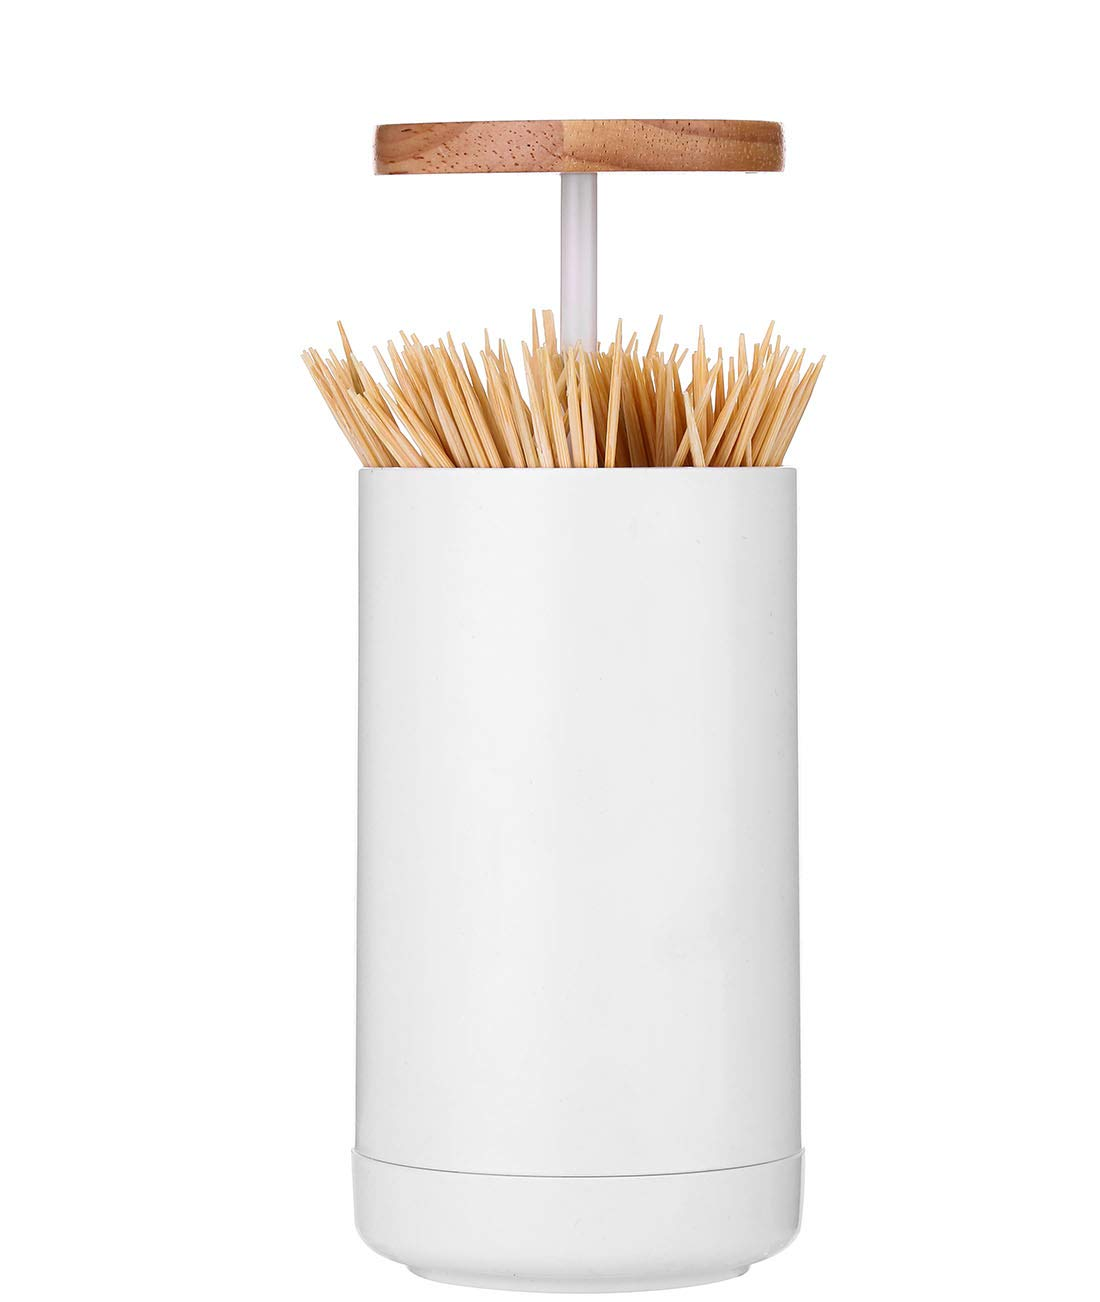 4 Compartment Q-Tip Container Box, Bathroom Automatic Pop up Cotton Swab Holder, Toothpick Dispenser (Oak Wood Lid)